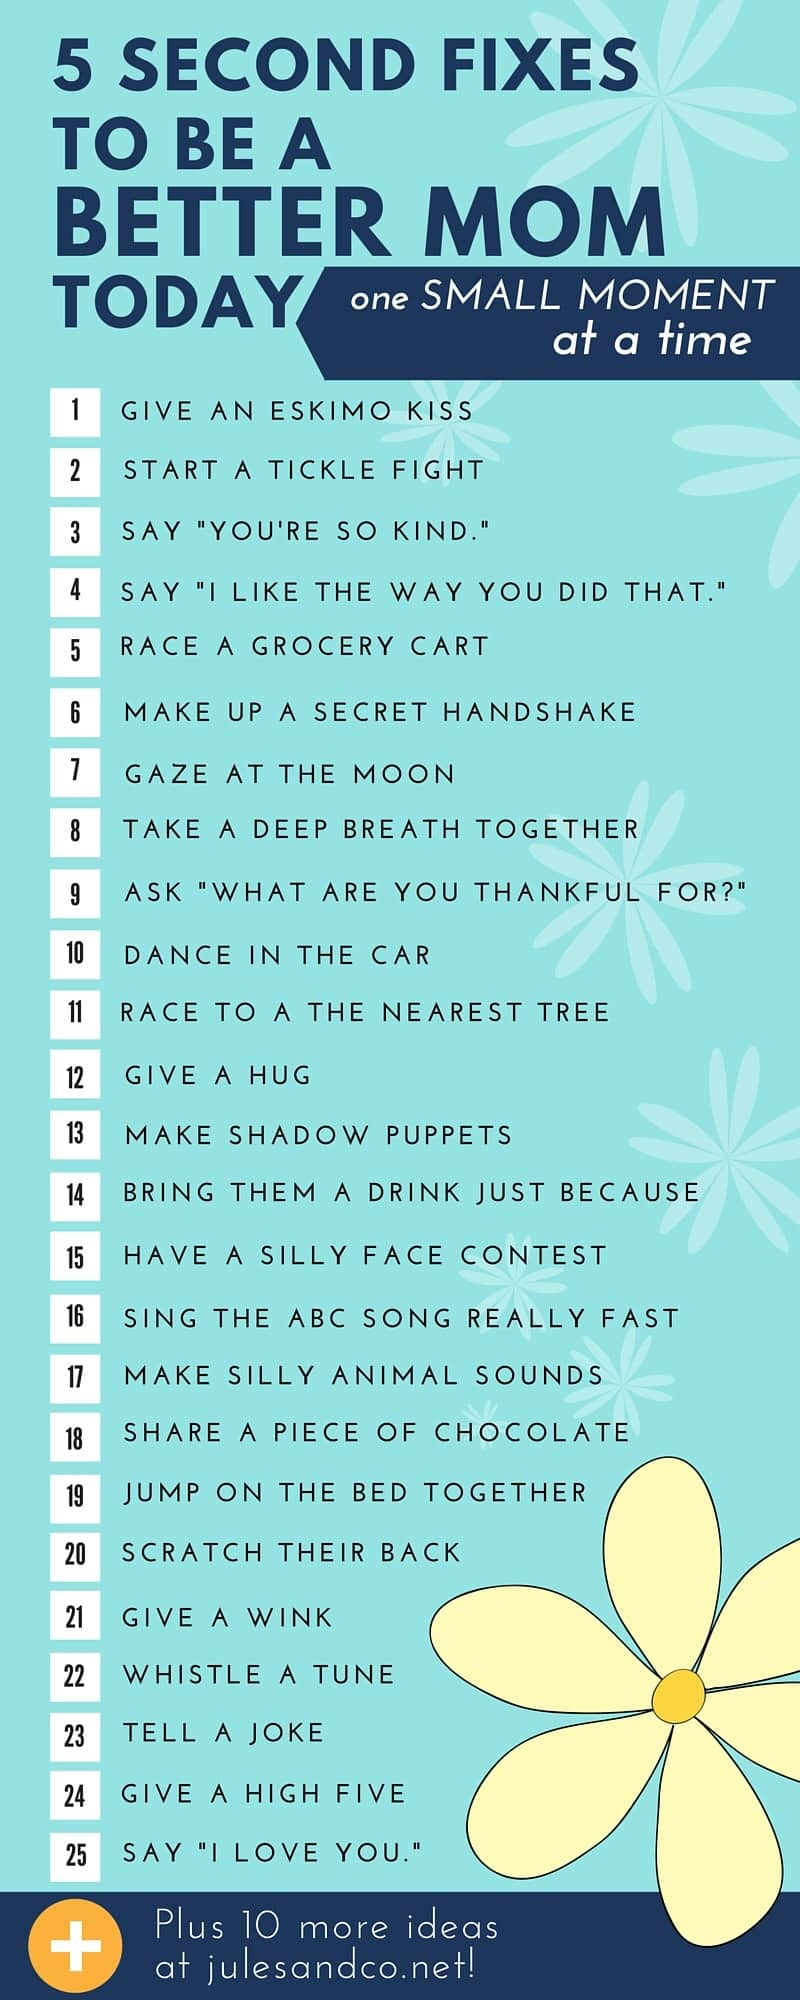 Good parenting is in the smaller moments of our day. Here are some great tips from JulesandCo.net